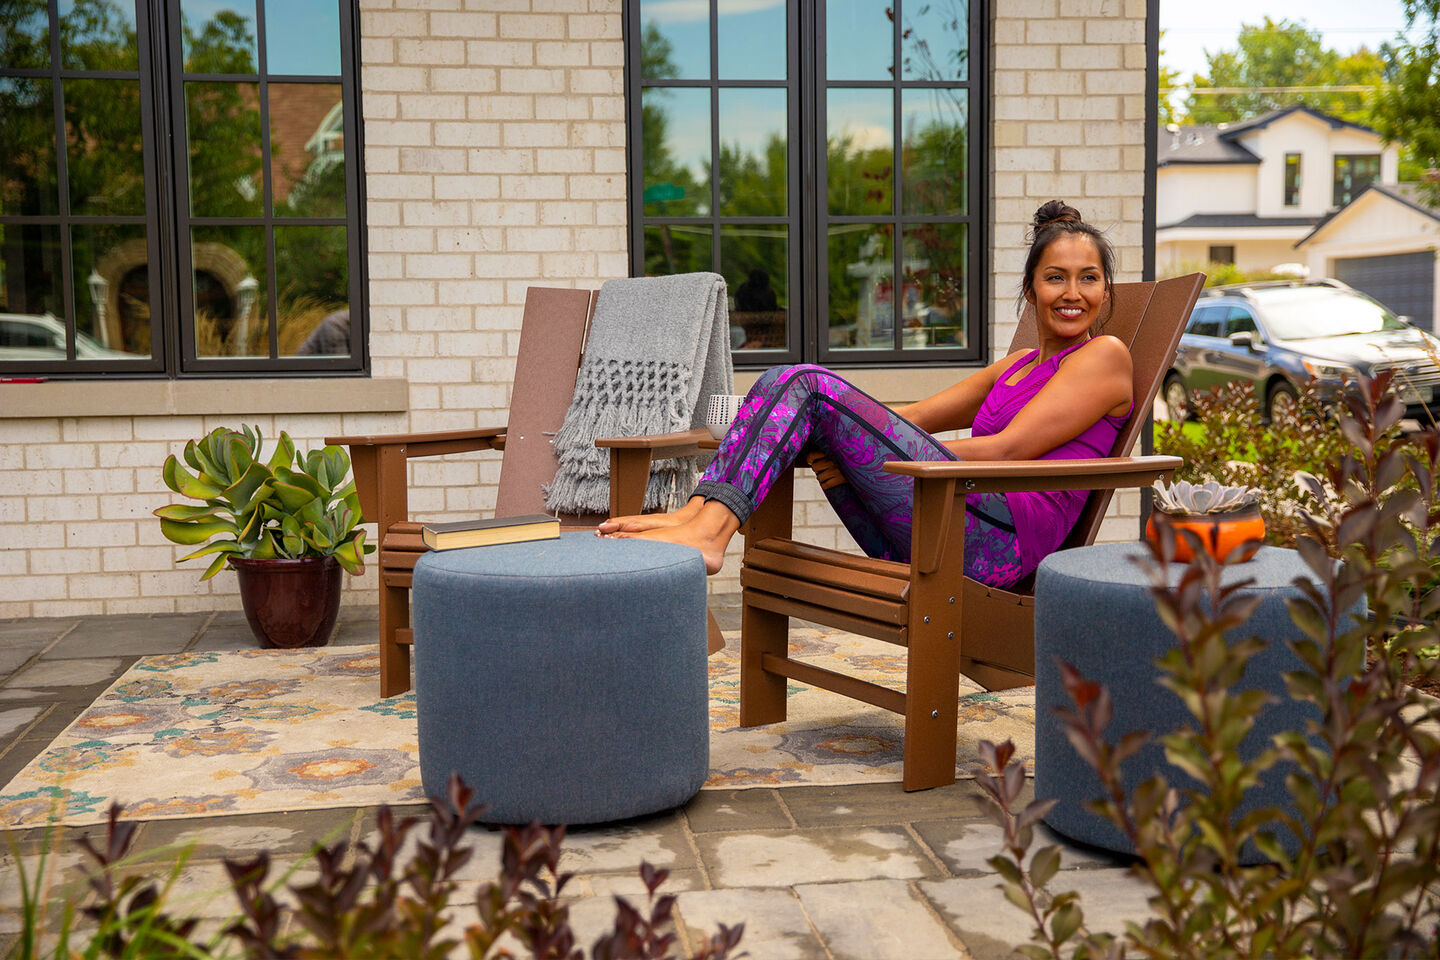 Woman on Patio enjoying outdoor furniture from Christy Sports